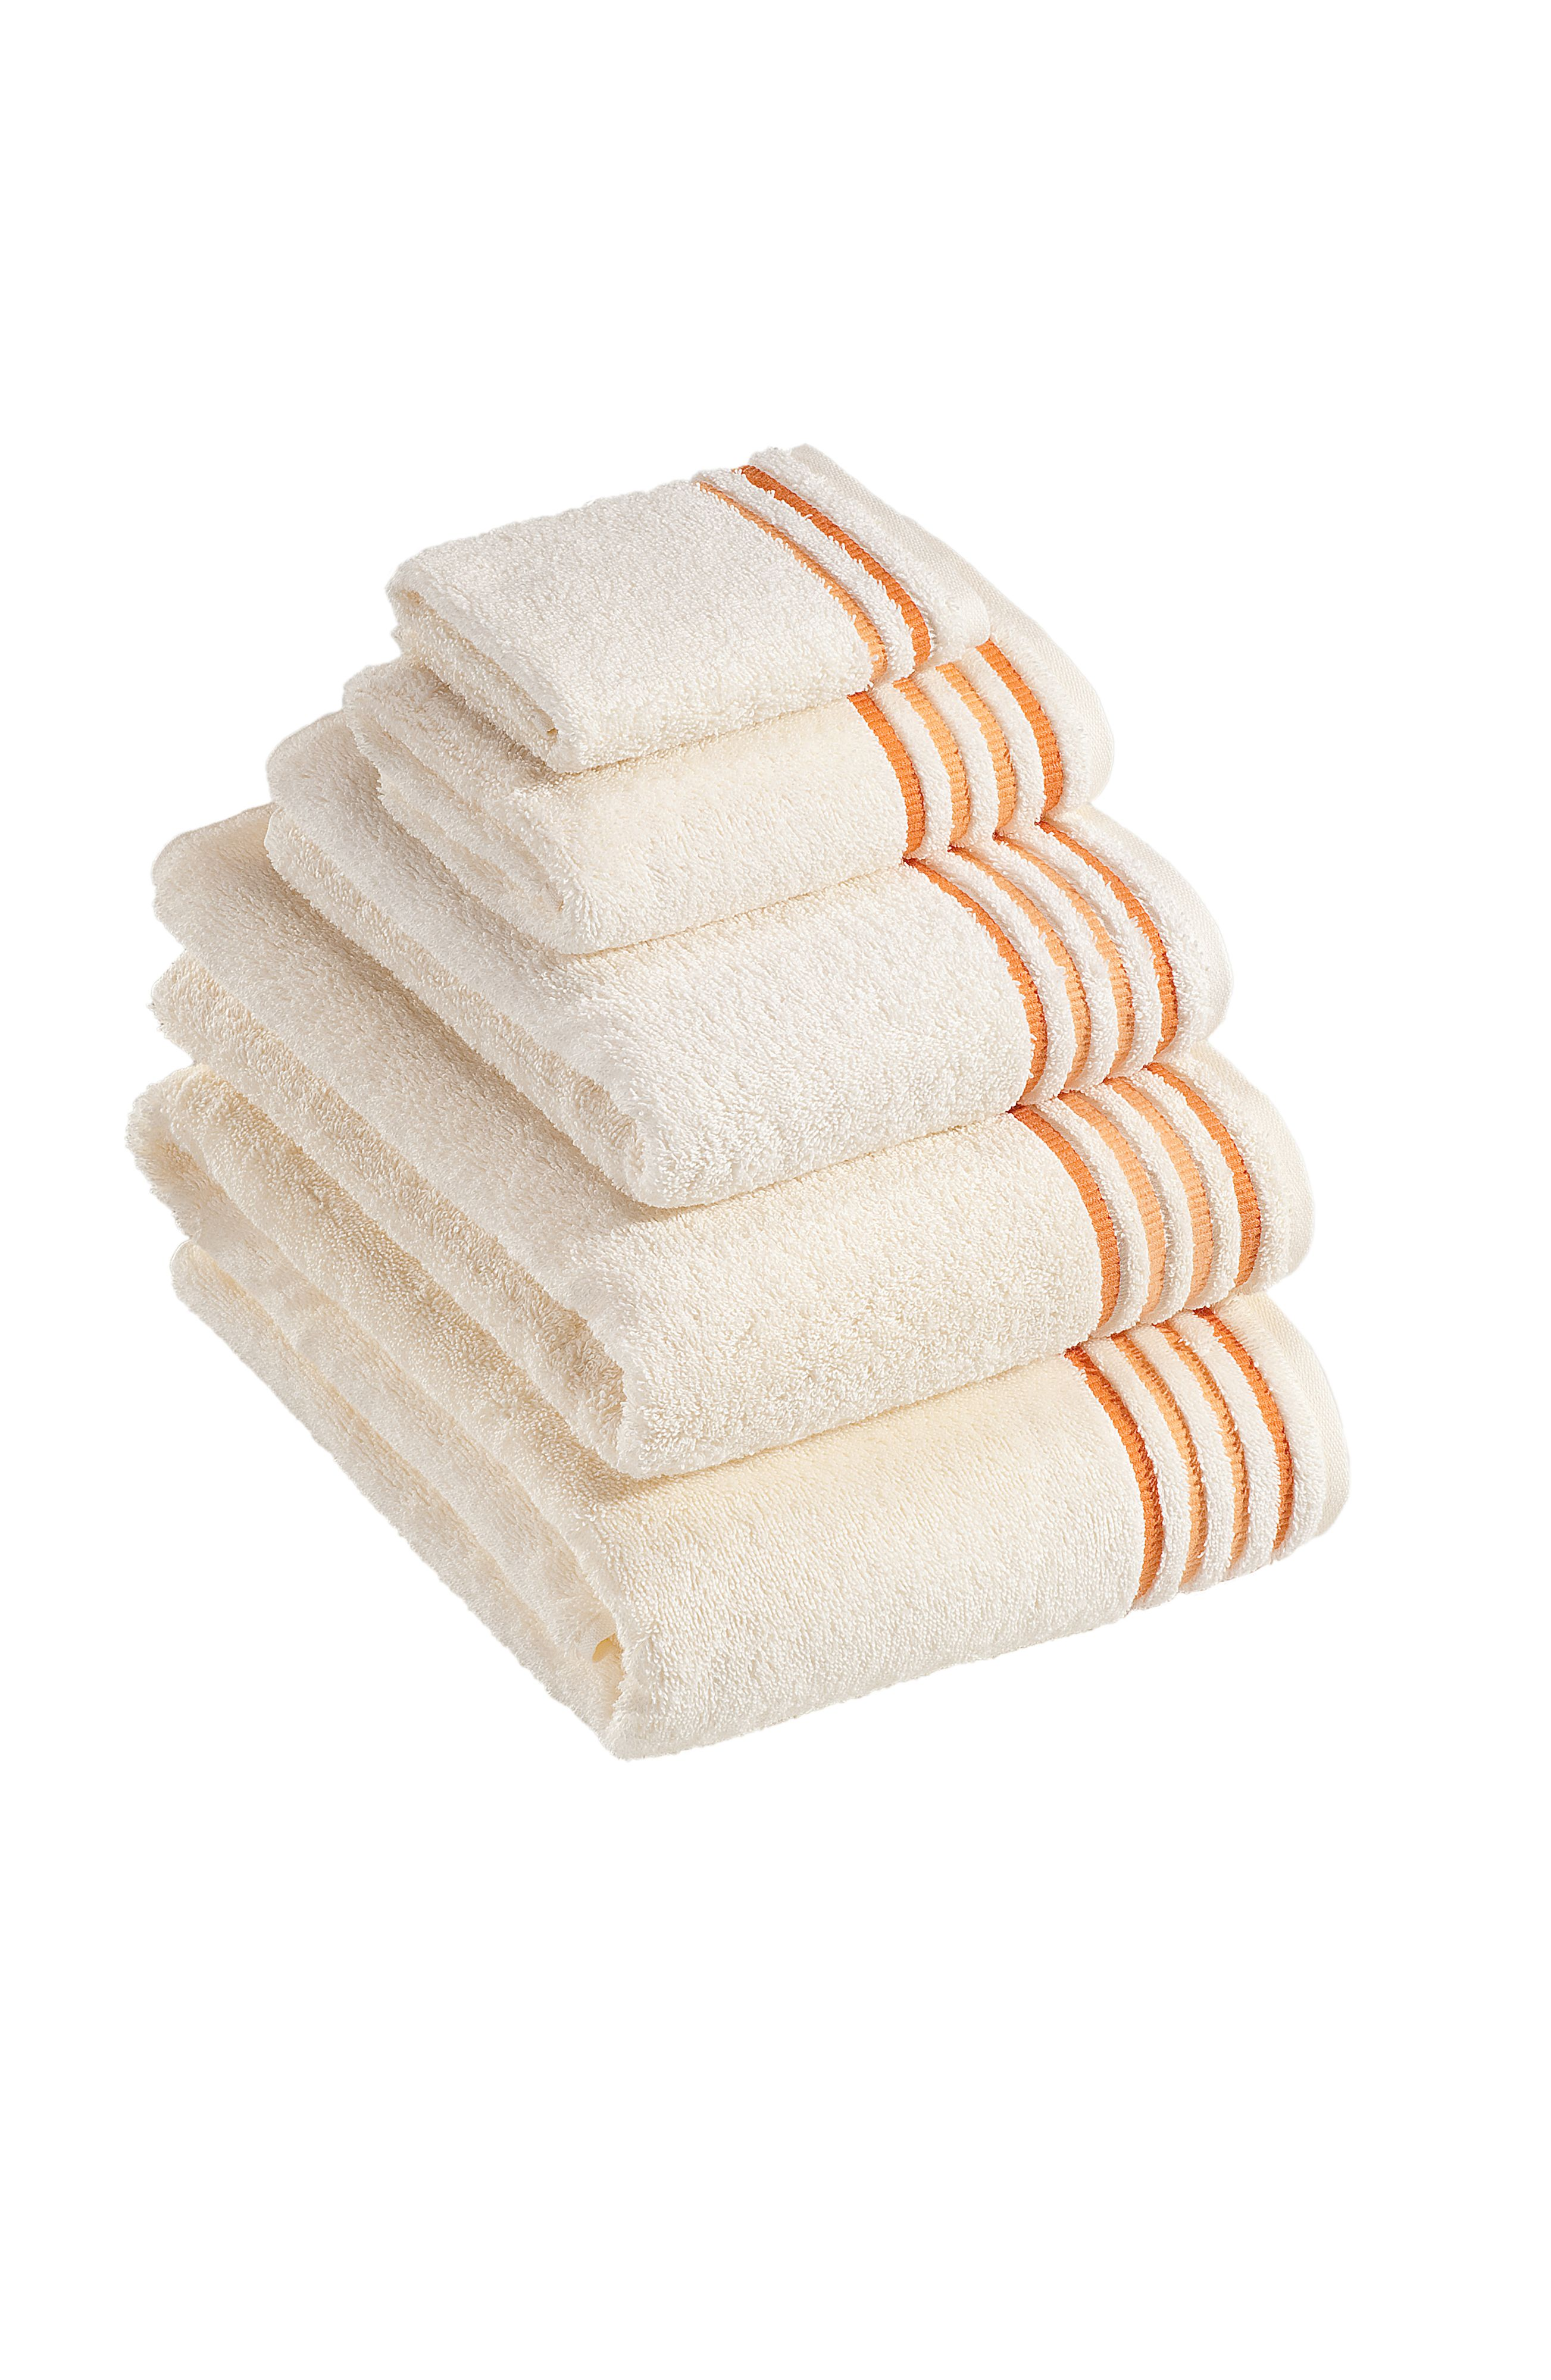 De Luxe towel range in ivory/orange